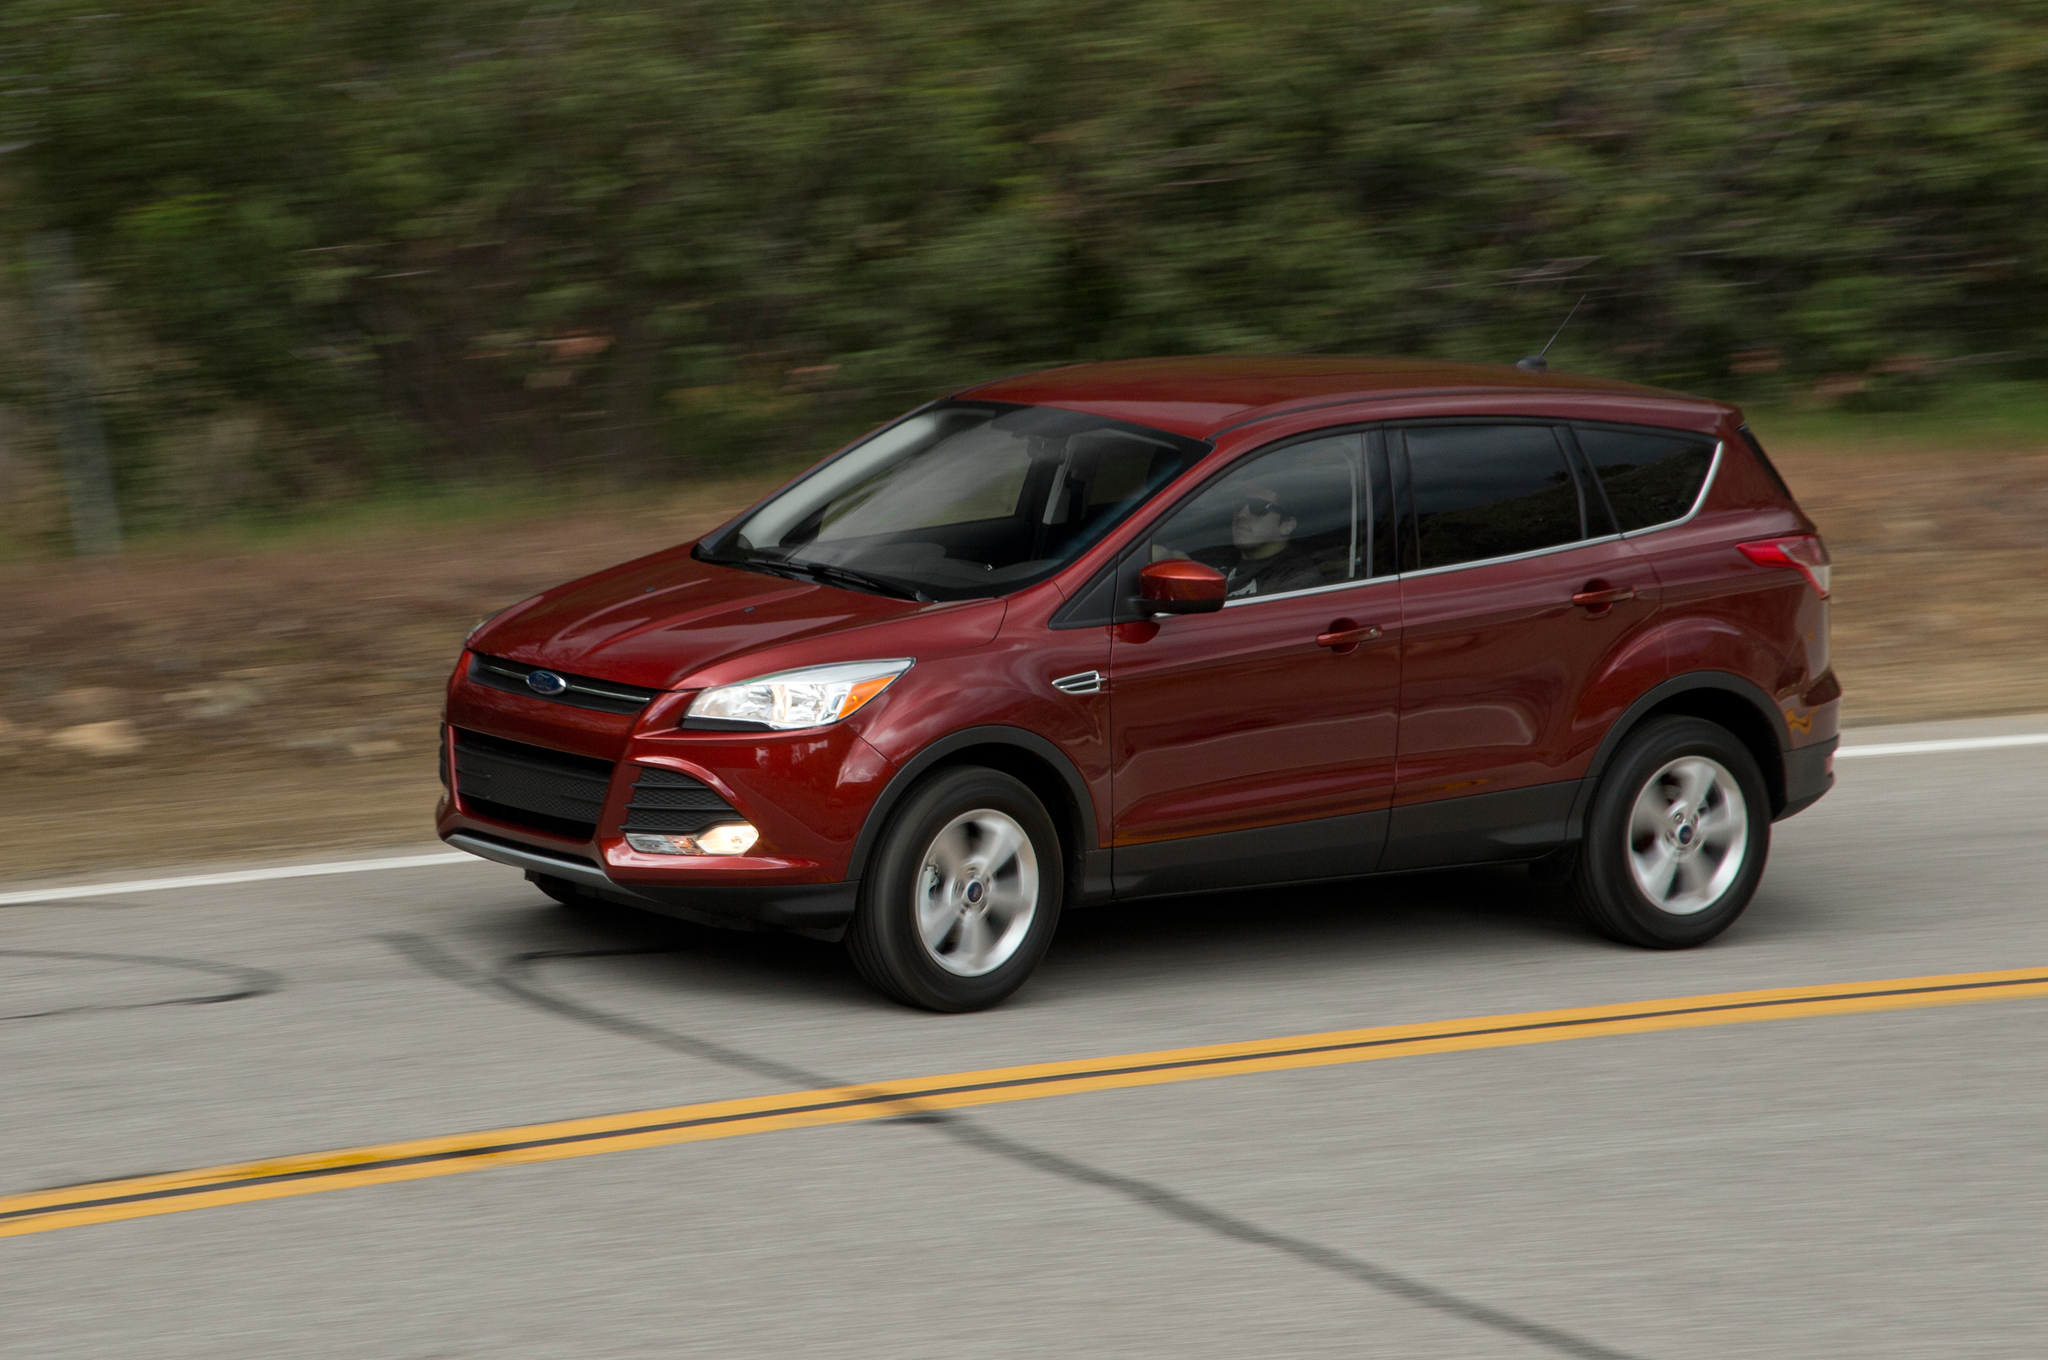 2015 ford escape 0-60